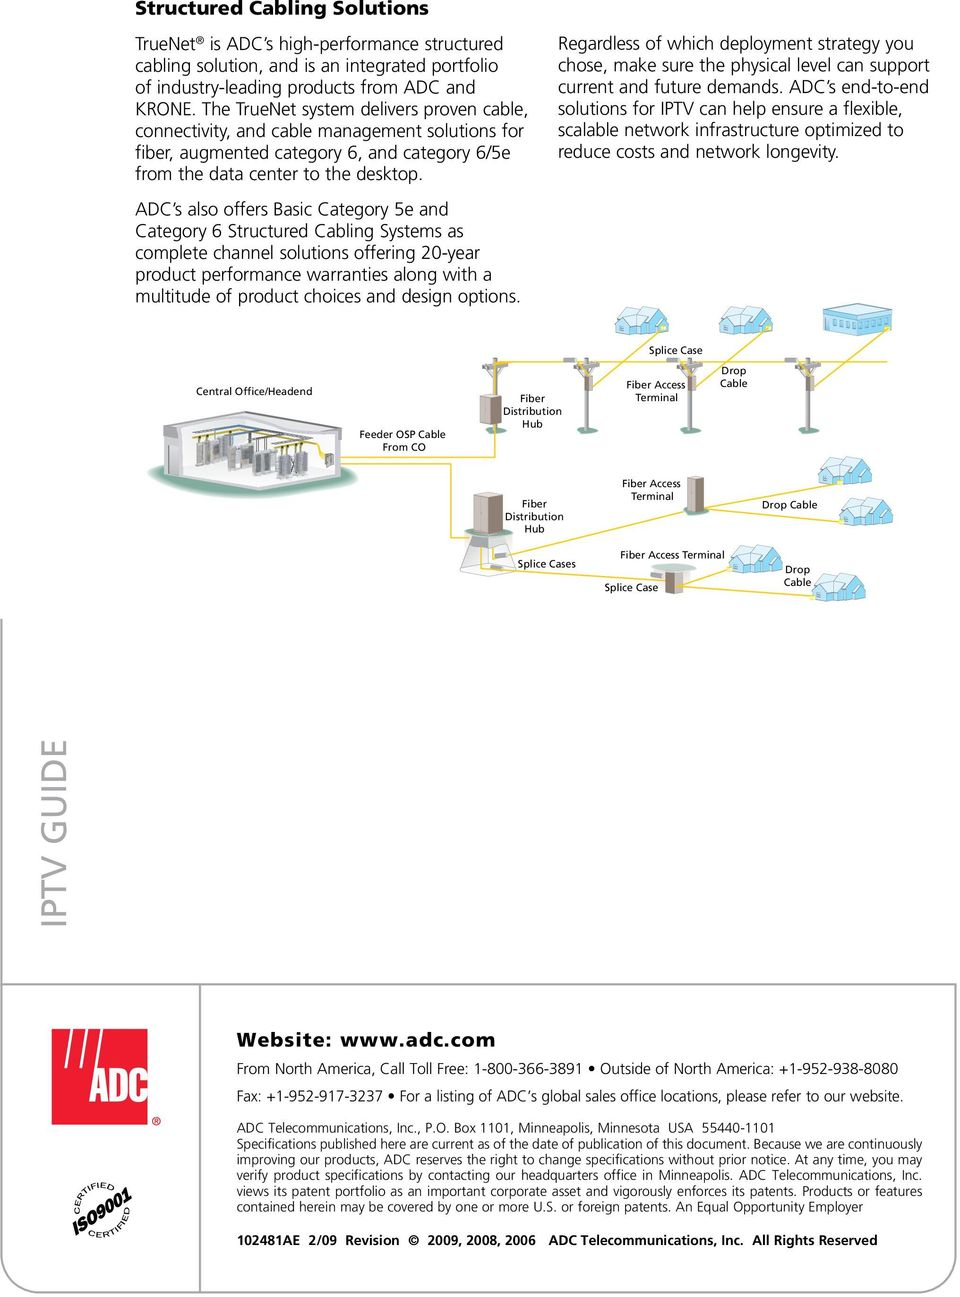 Iptv Guide Practical Deployment Strategies For Network Operators Pdf Wiring Diagram Regardless Of Which Strategy You Chose Make Sure The Physical Level Can Support Current